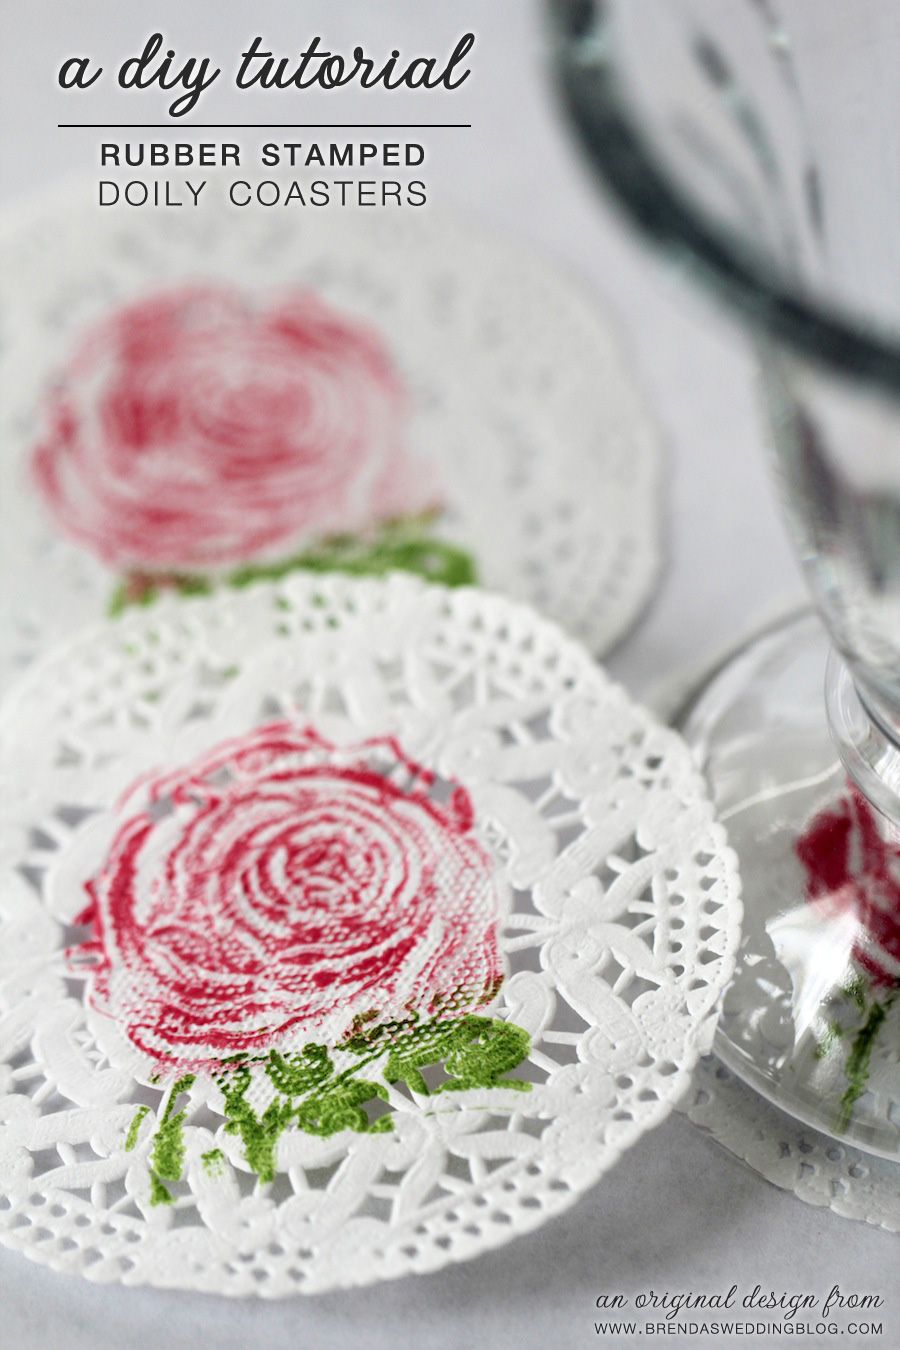 DIY Tutorial for Rubber Stamped Paper Doily Coasters   an original creation from www.brendasweddingblog.com